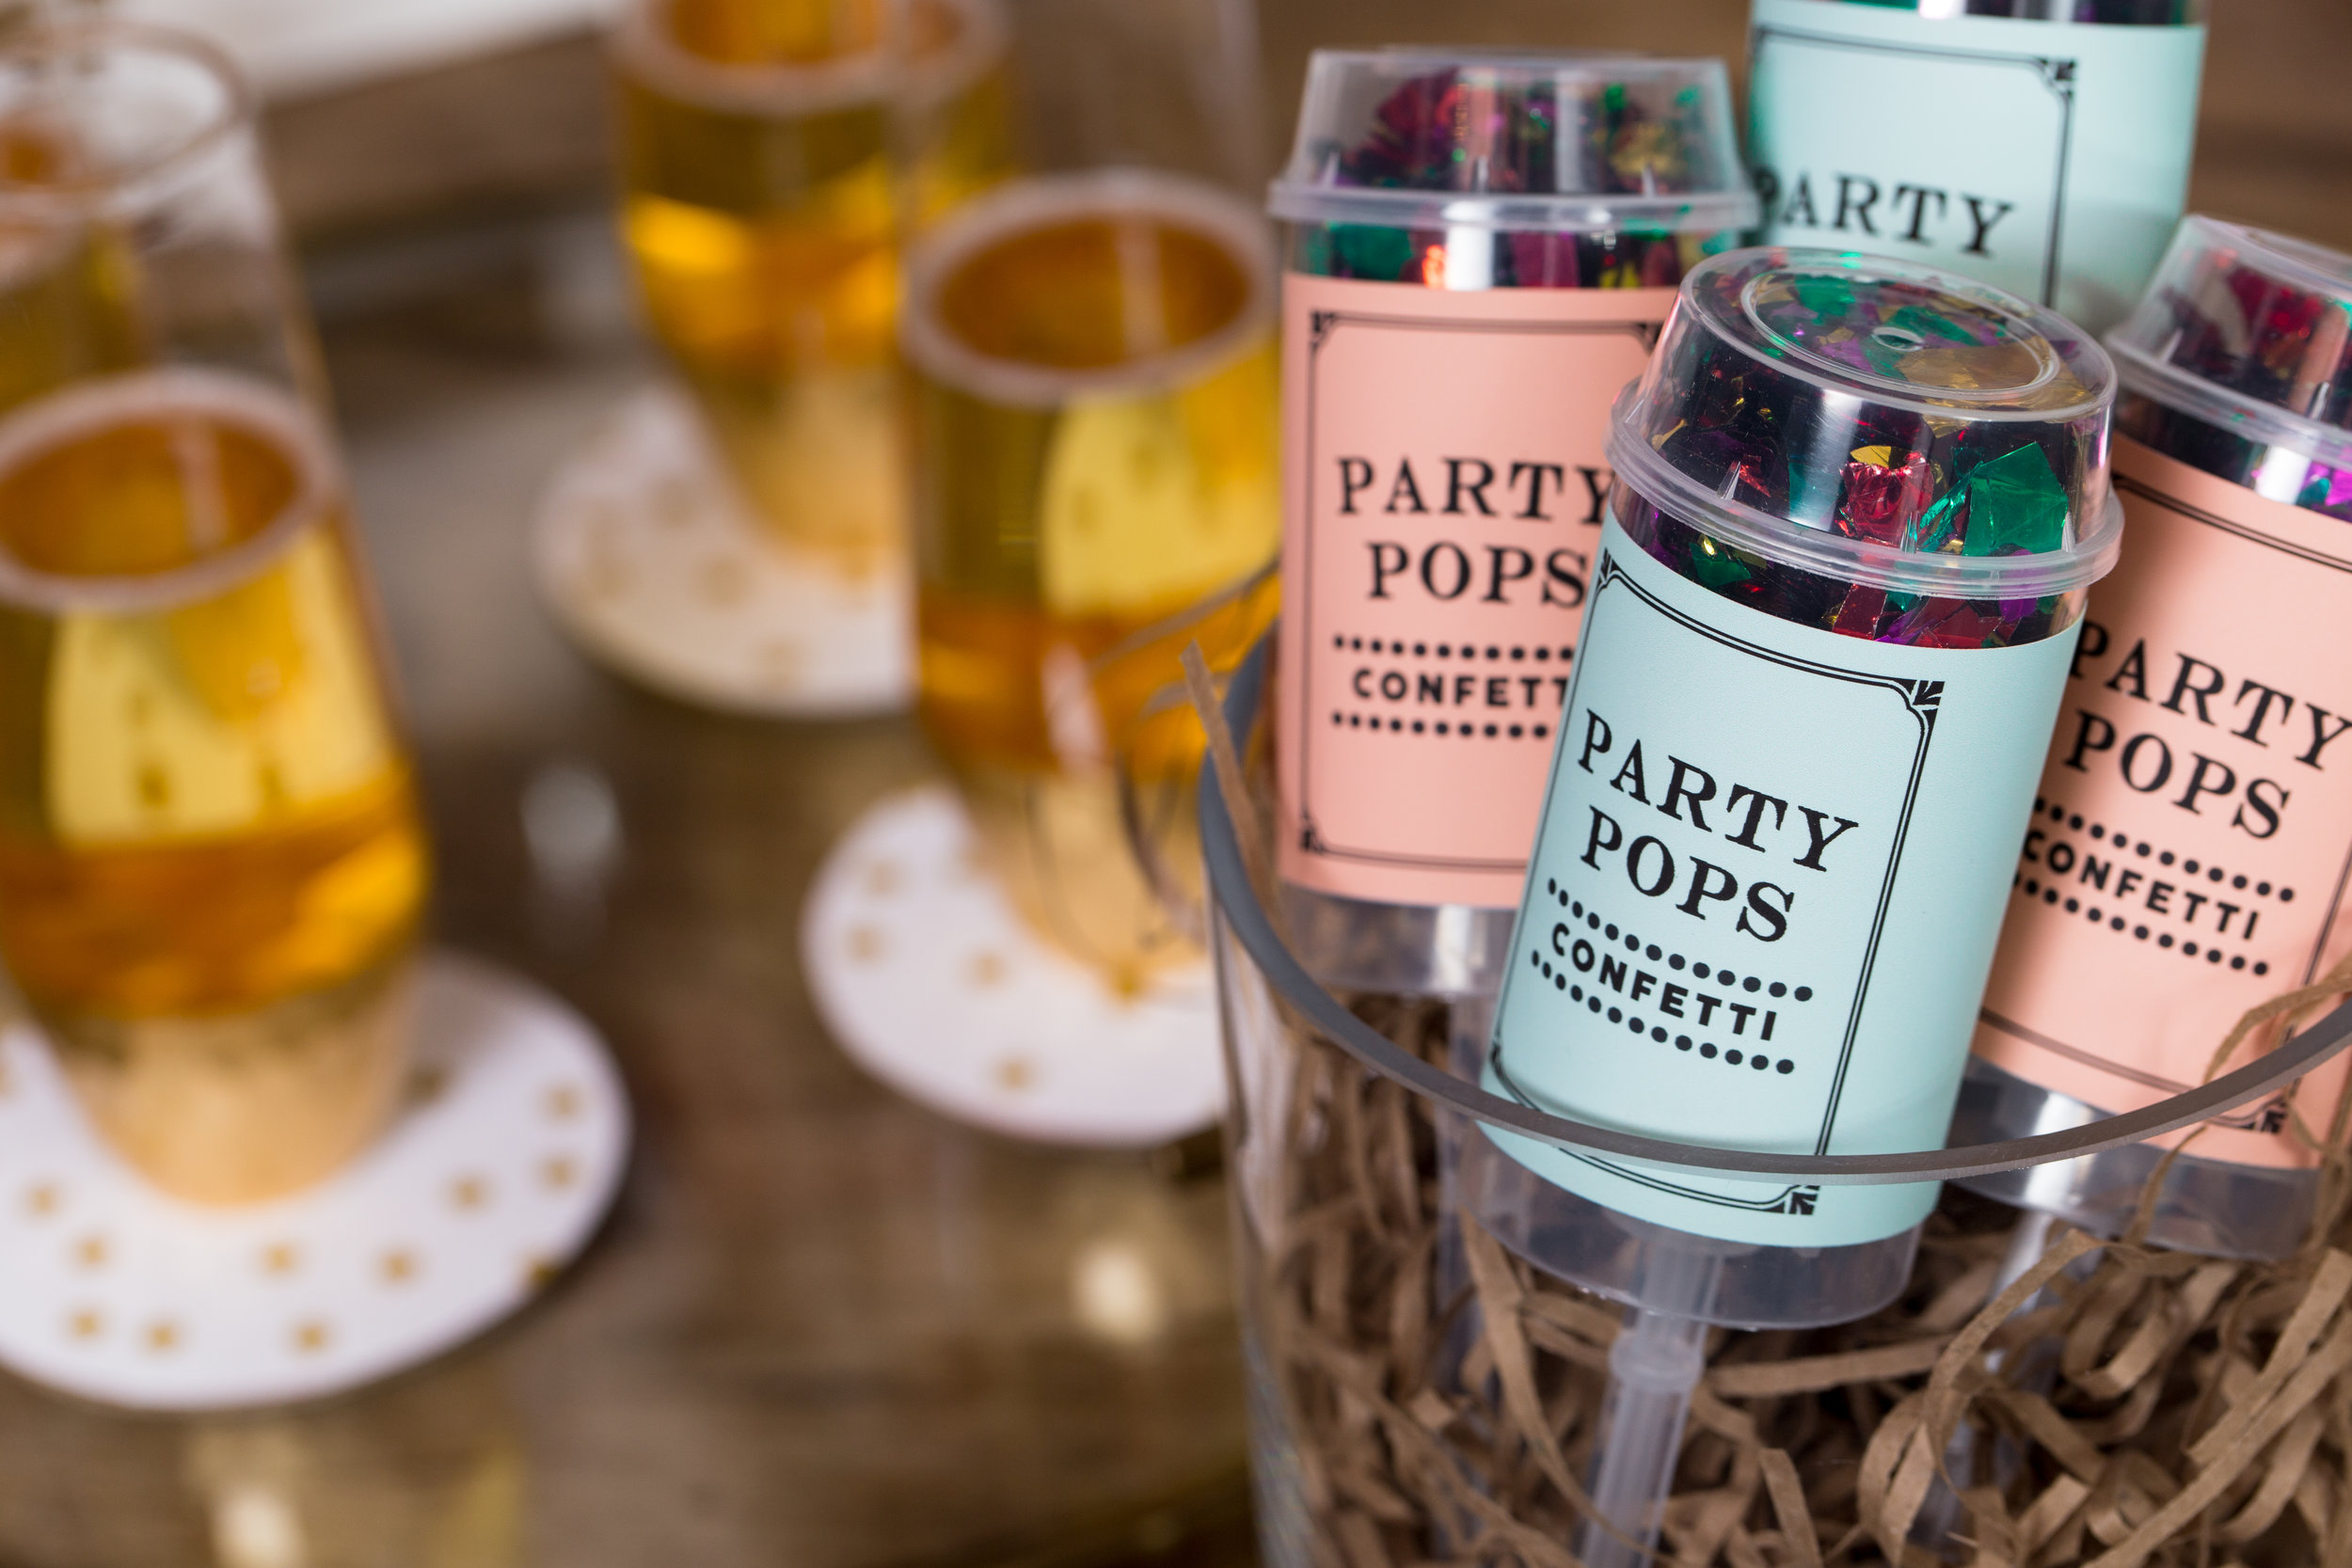 Thoughtfully Party Props and Pops Box